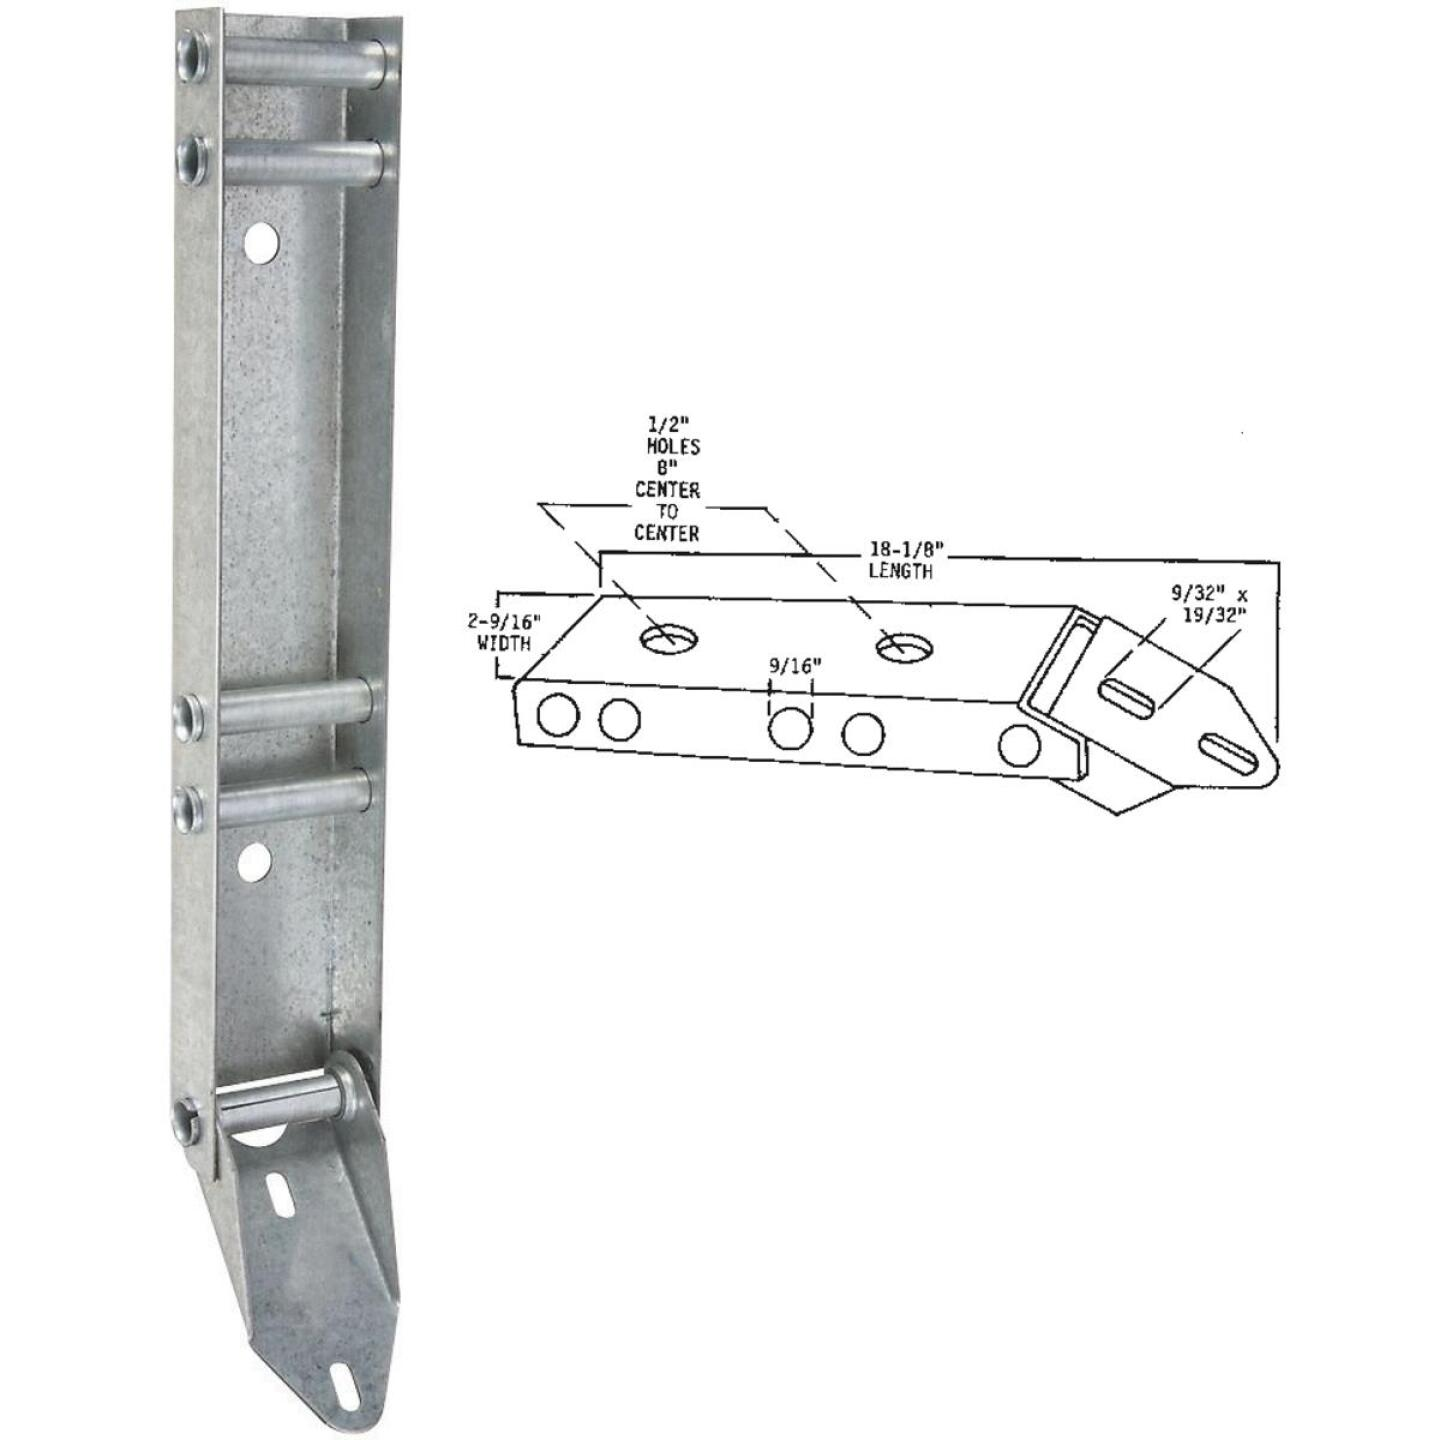 National Garage Door Low Head Clearance Quick Turn Bracket Image 1